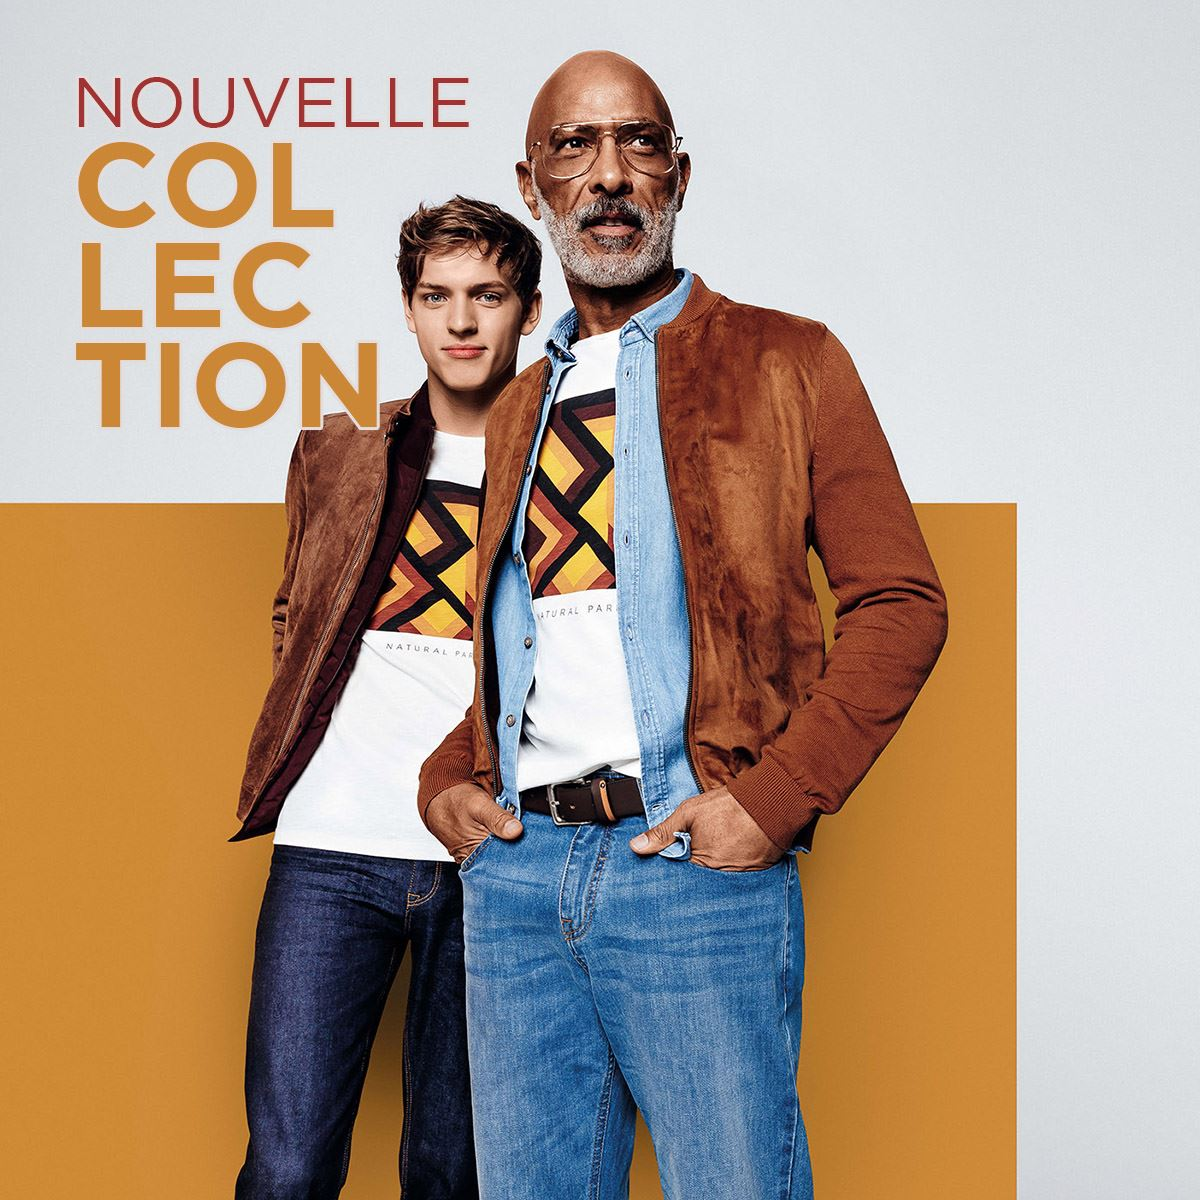 Nouvelle collection Brice